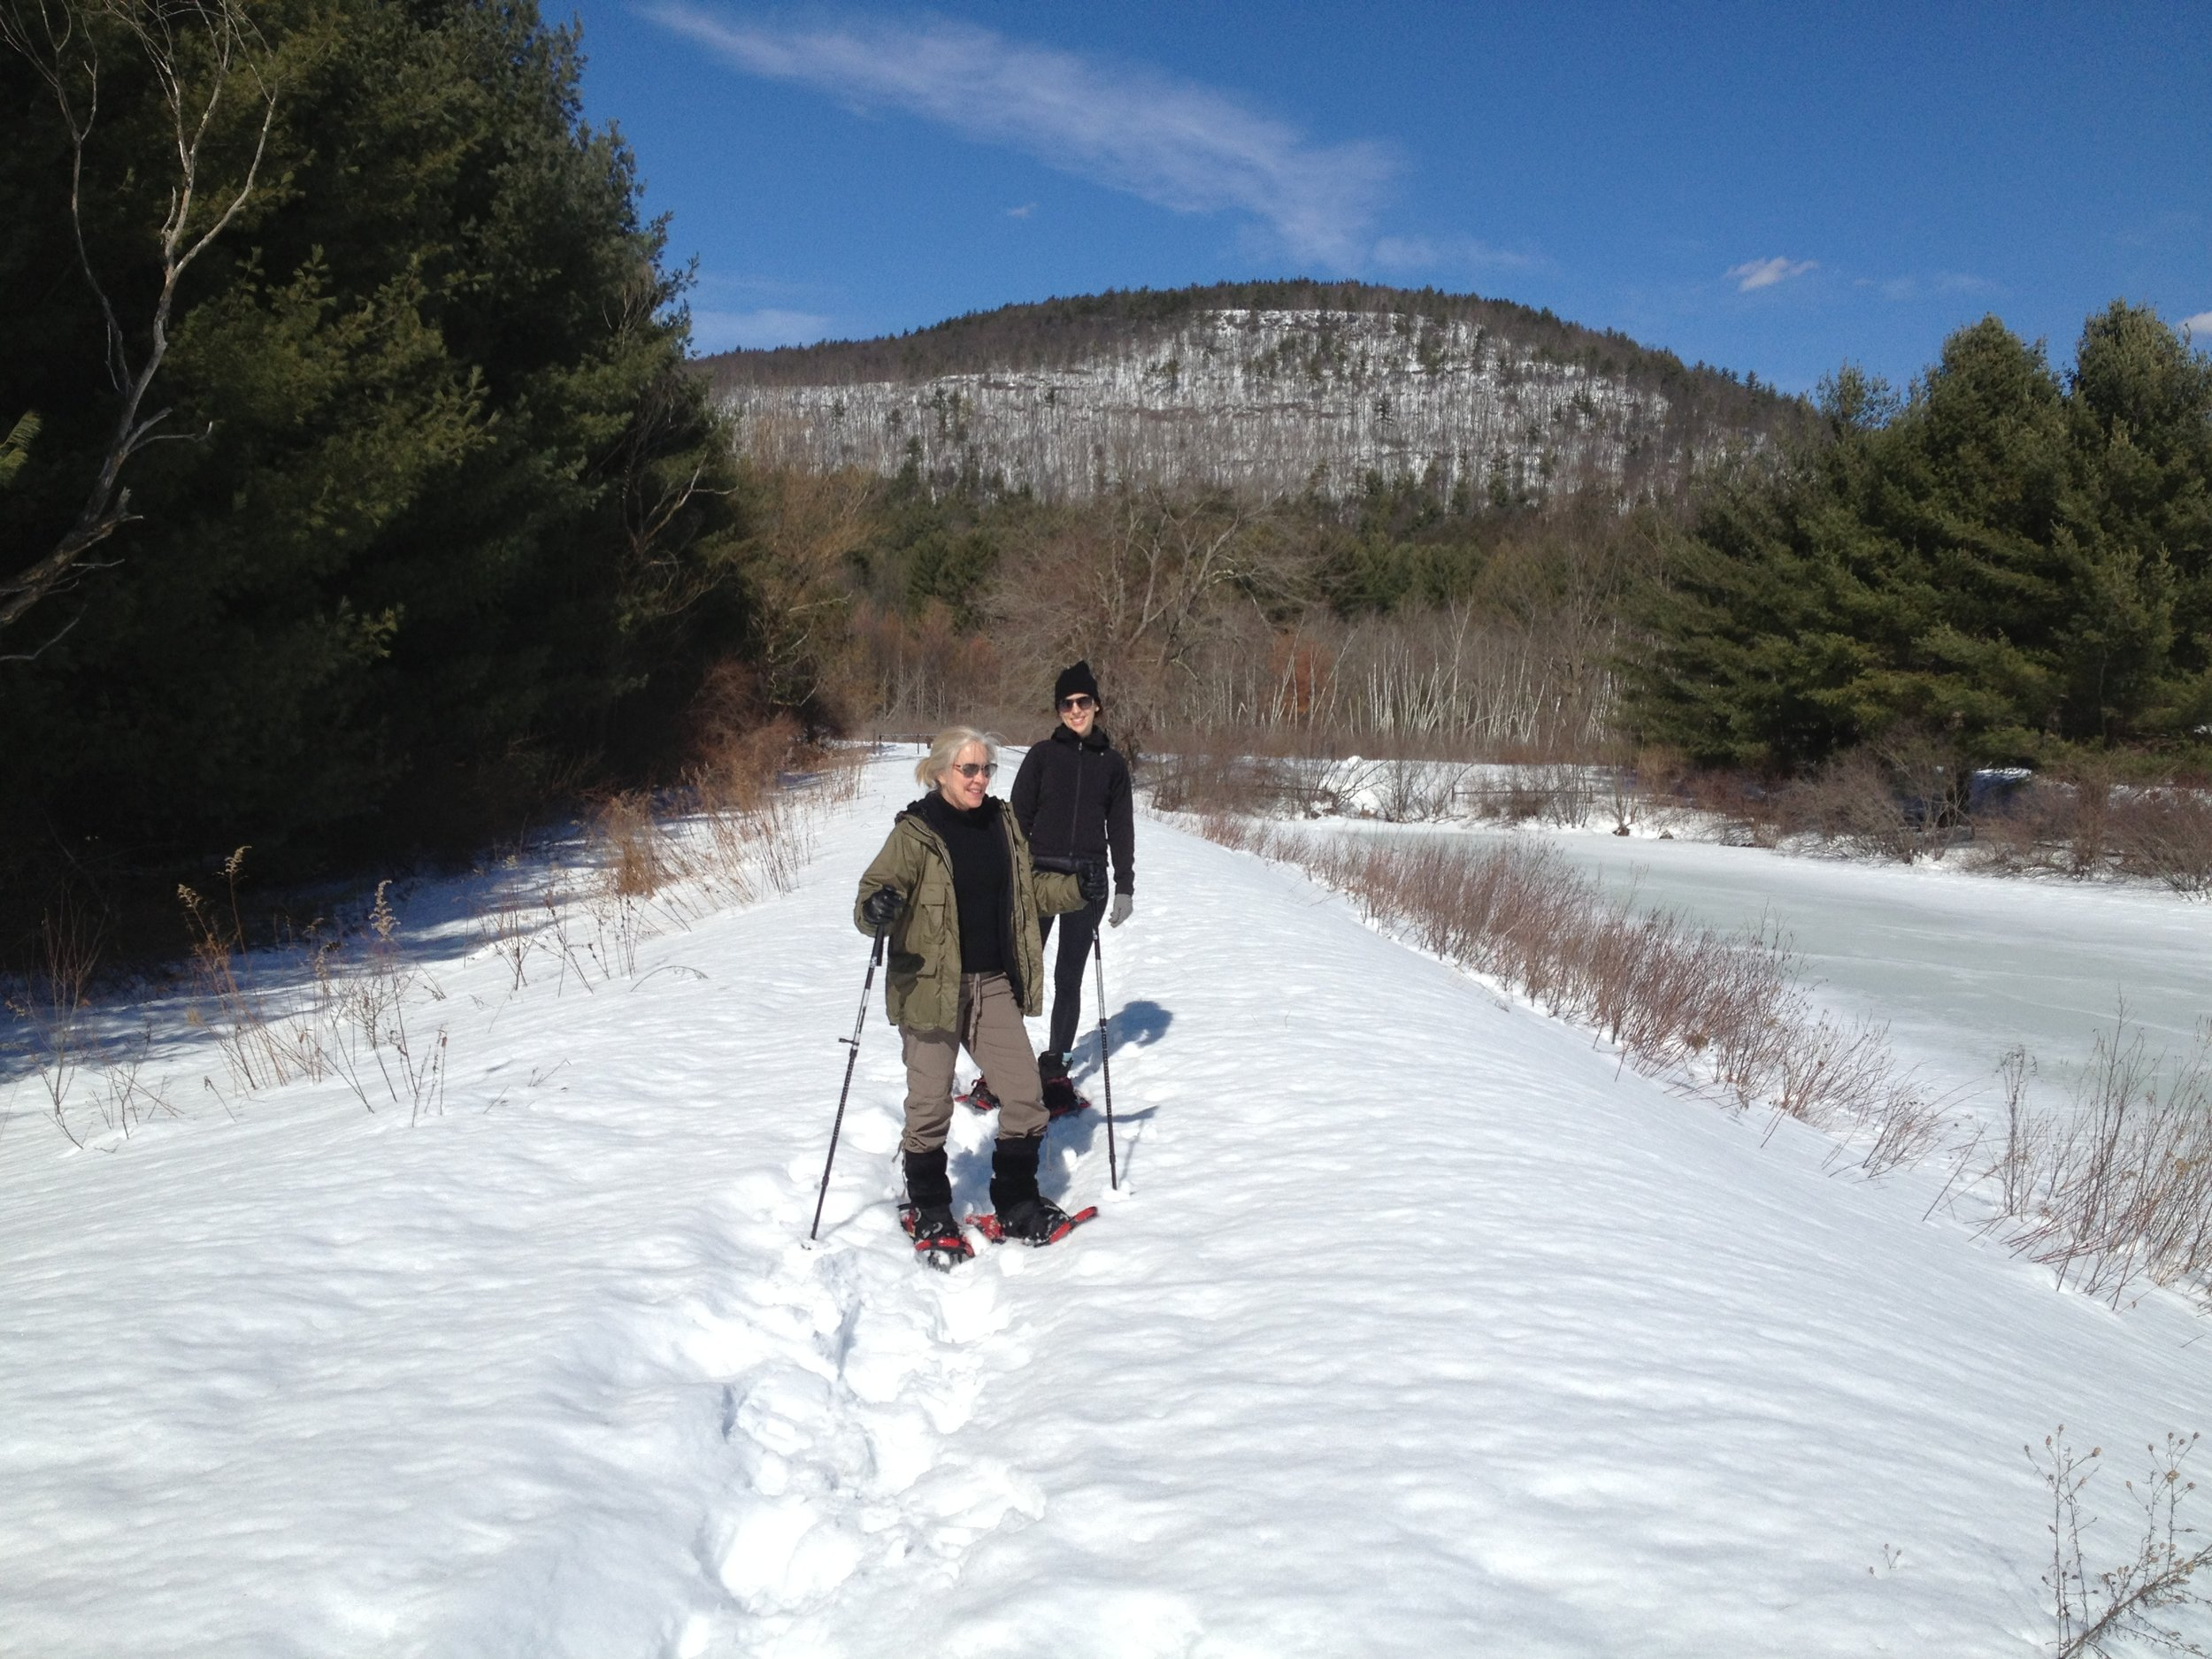 K. Wilson state park - A perfect place for snowshoeing. No entrance fee in the winter months. GPS: 859 Wittenberg Road, Mt. Tremper, NY 12457